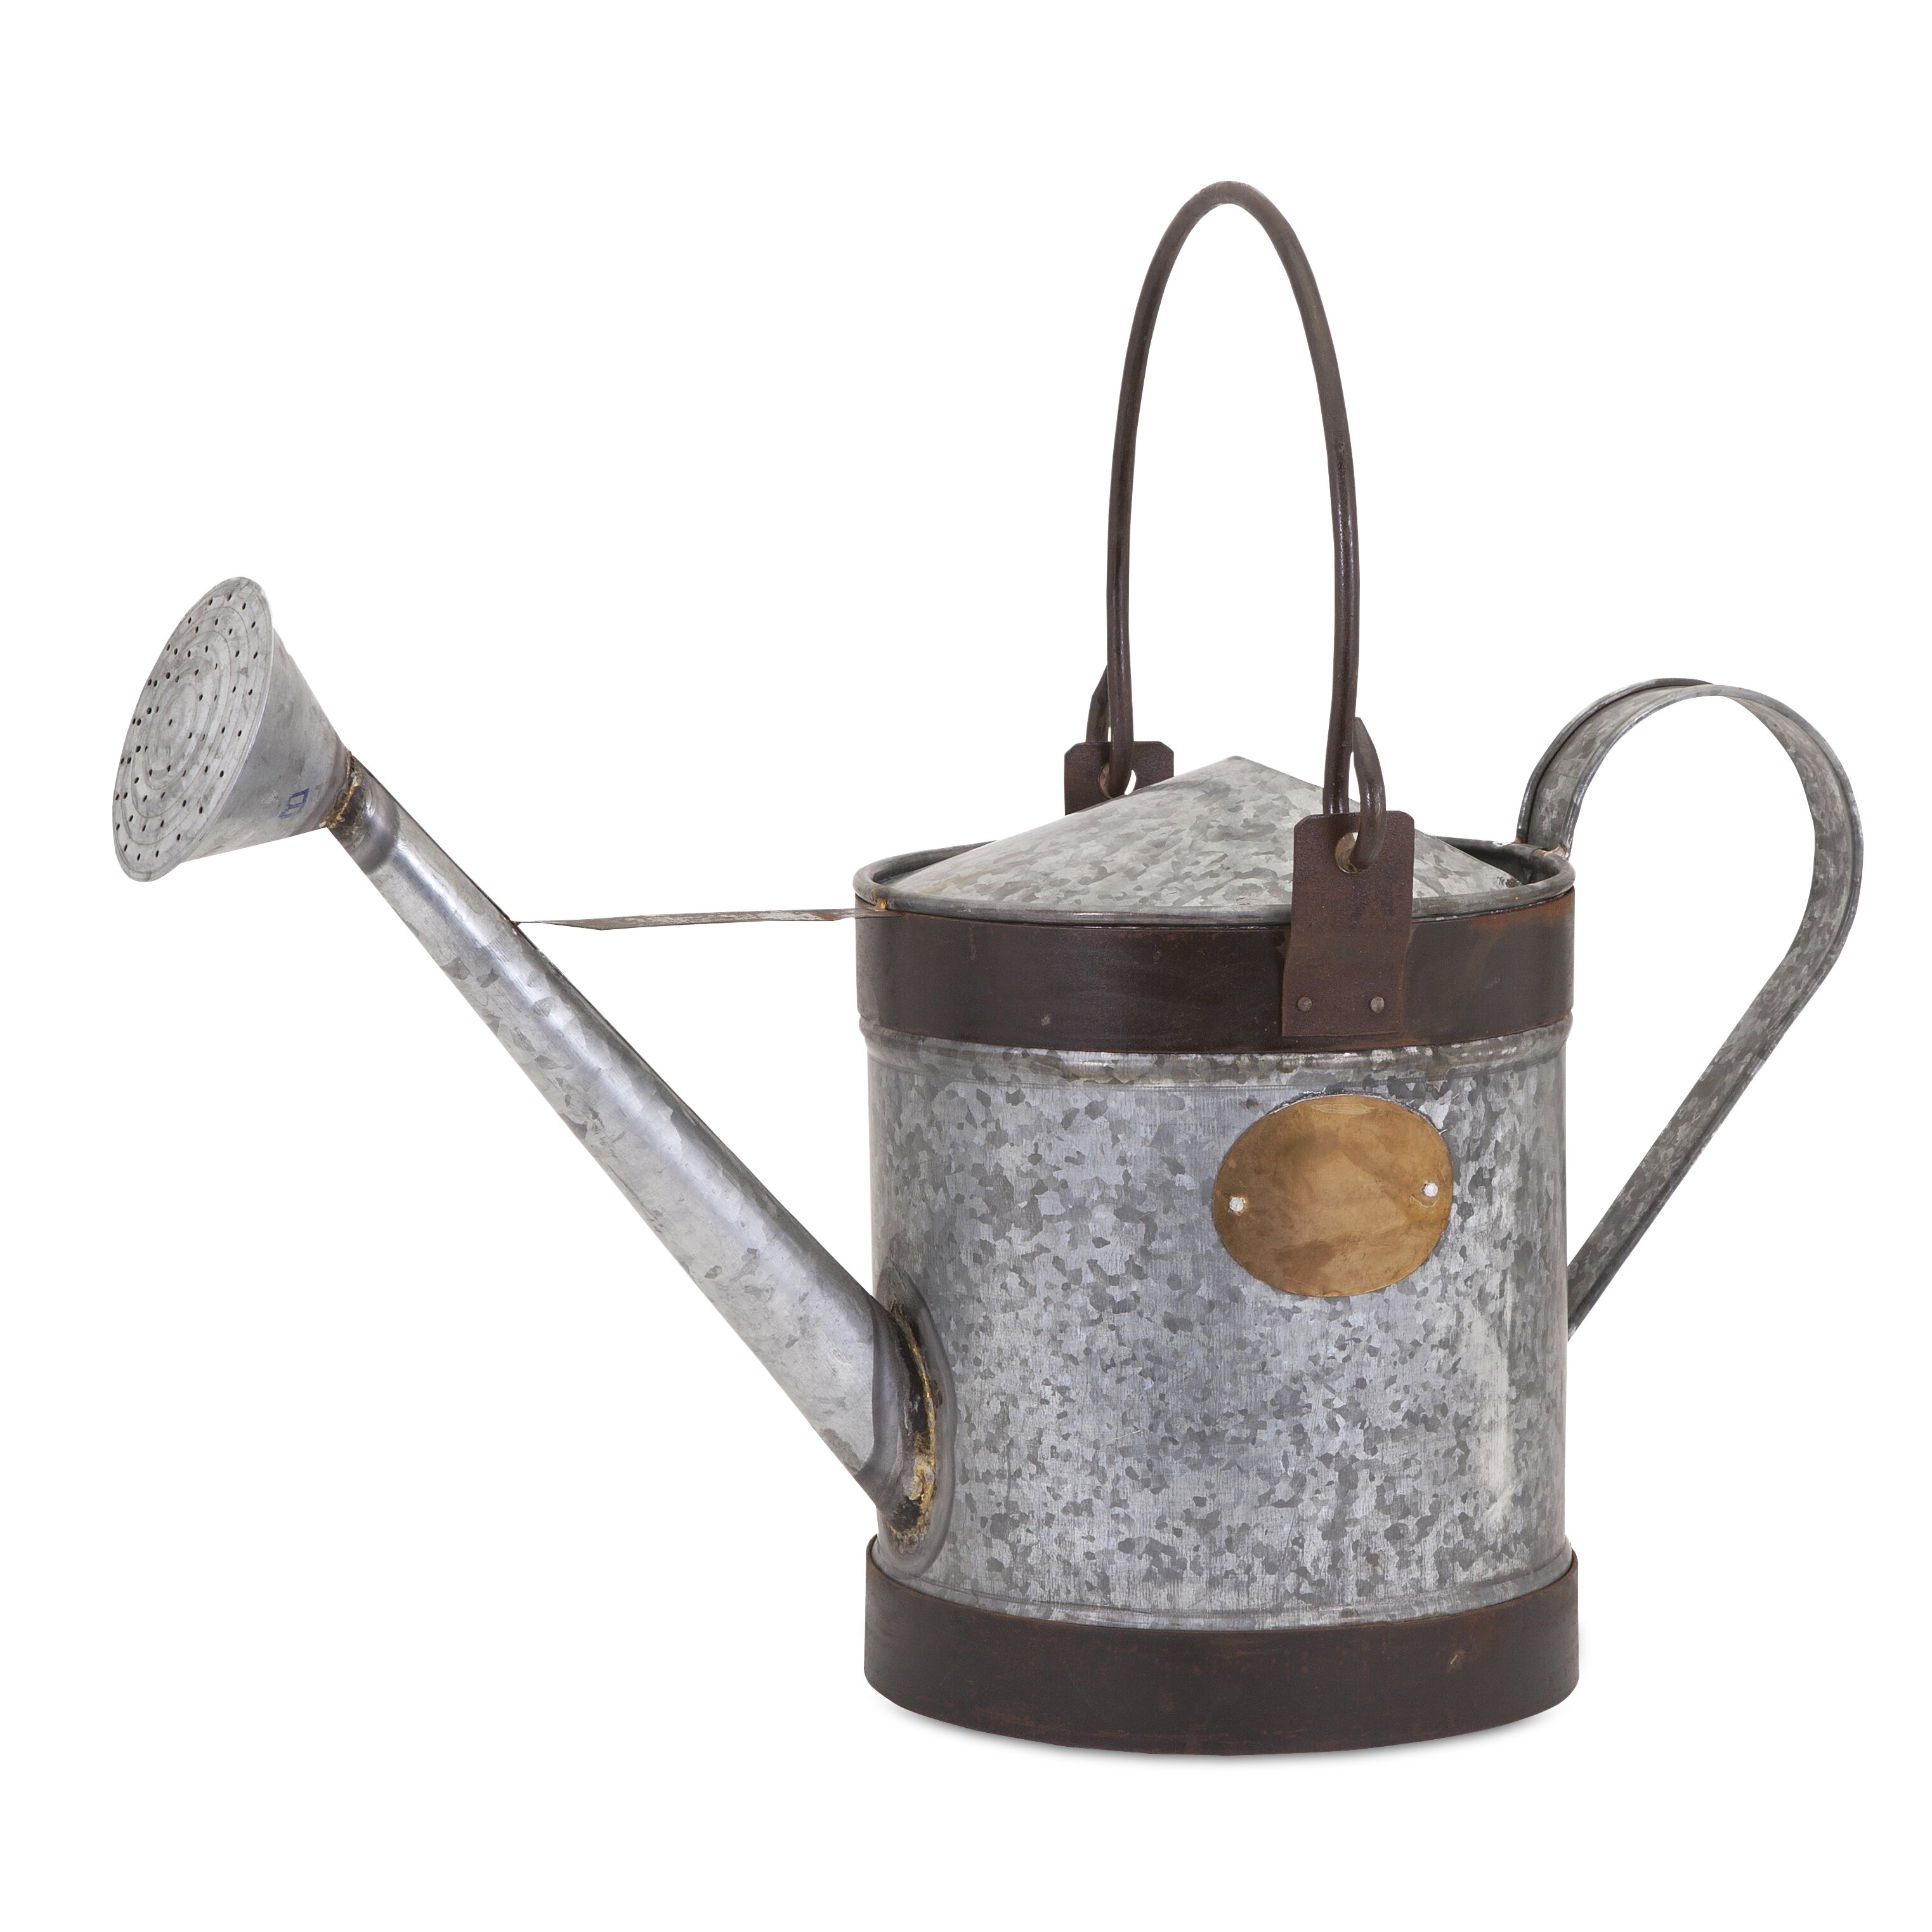 Decorative Walsh Watering Can Wayfair